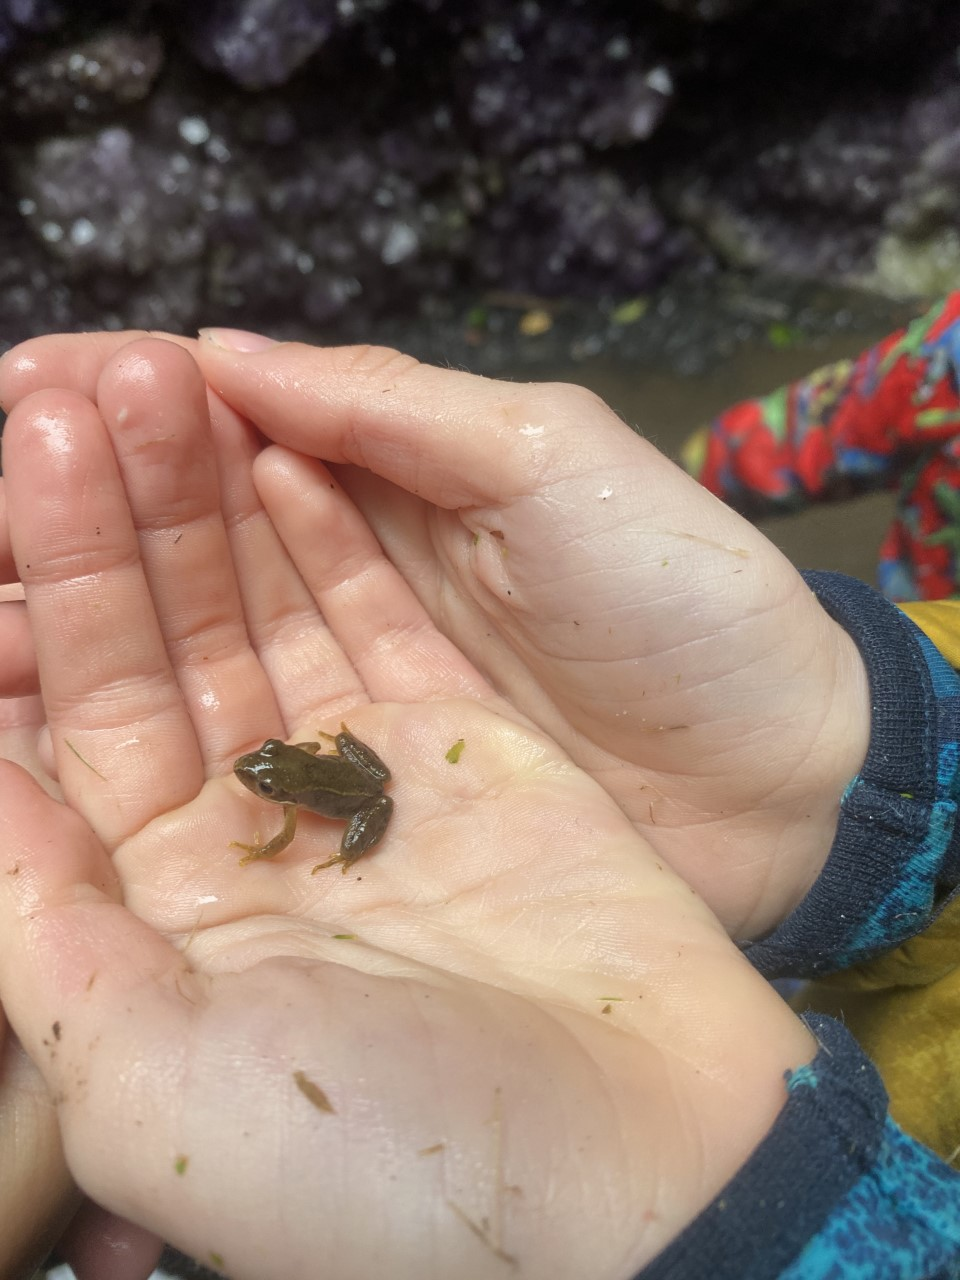 tiny frog in child's hands